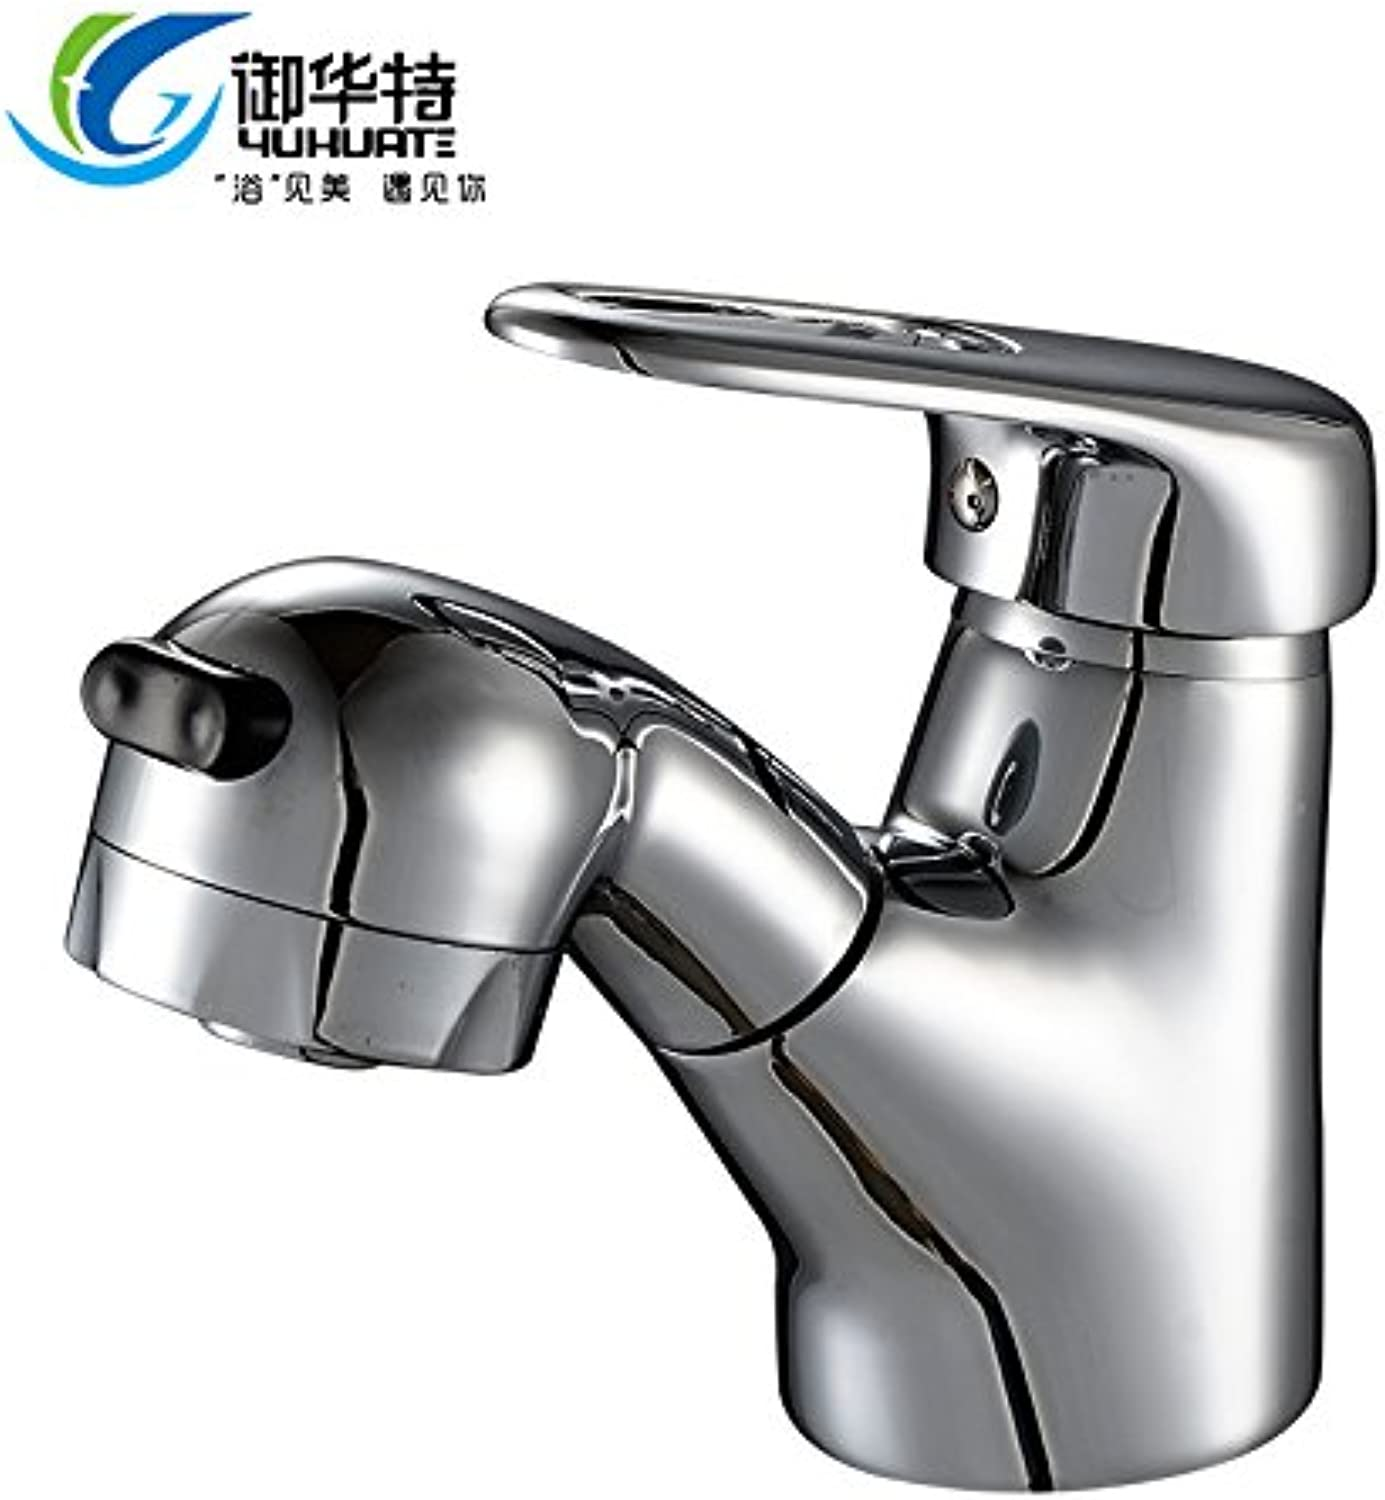 Hlluya Professional Sink Mixer Tap Kitchen Faucet Wash Basin mixer pull faucet shampoo handheld hot and cold brass taps, basin pull-down